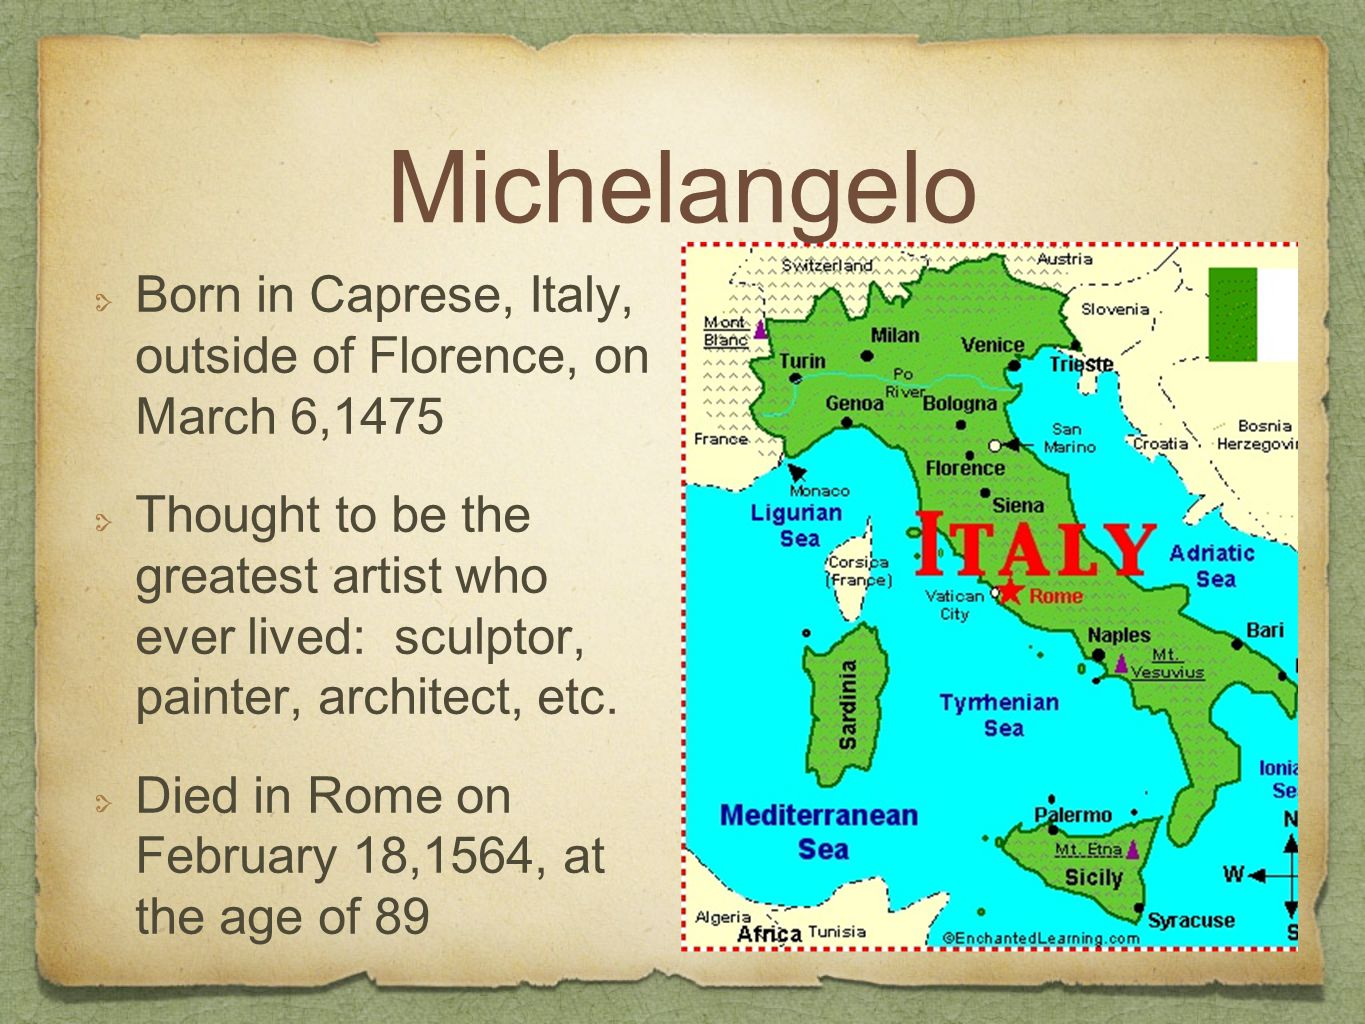 Michelangelo Born in Caprese, Italy, outside of Florence, on March 6,1475 Thought to be the greatest artist who ever lived: sculptor, painter, architect, etc.